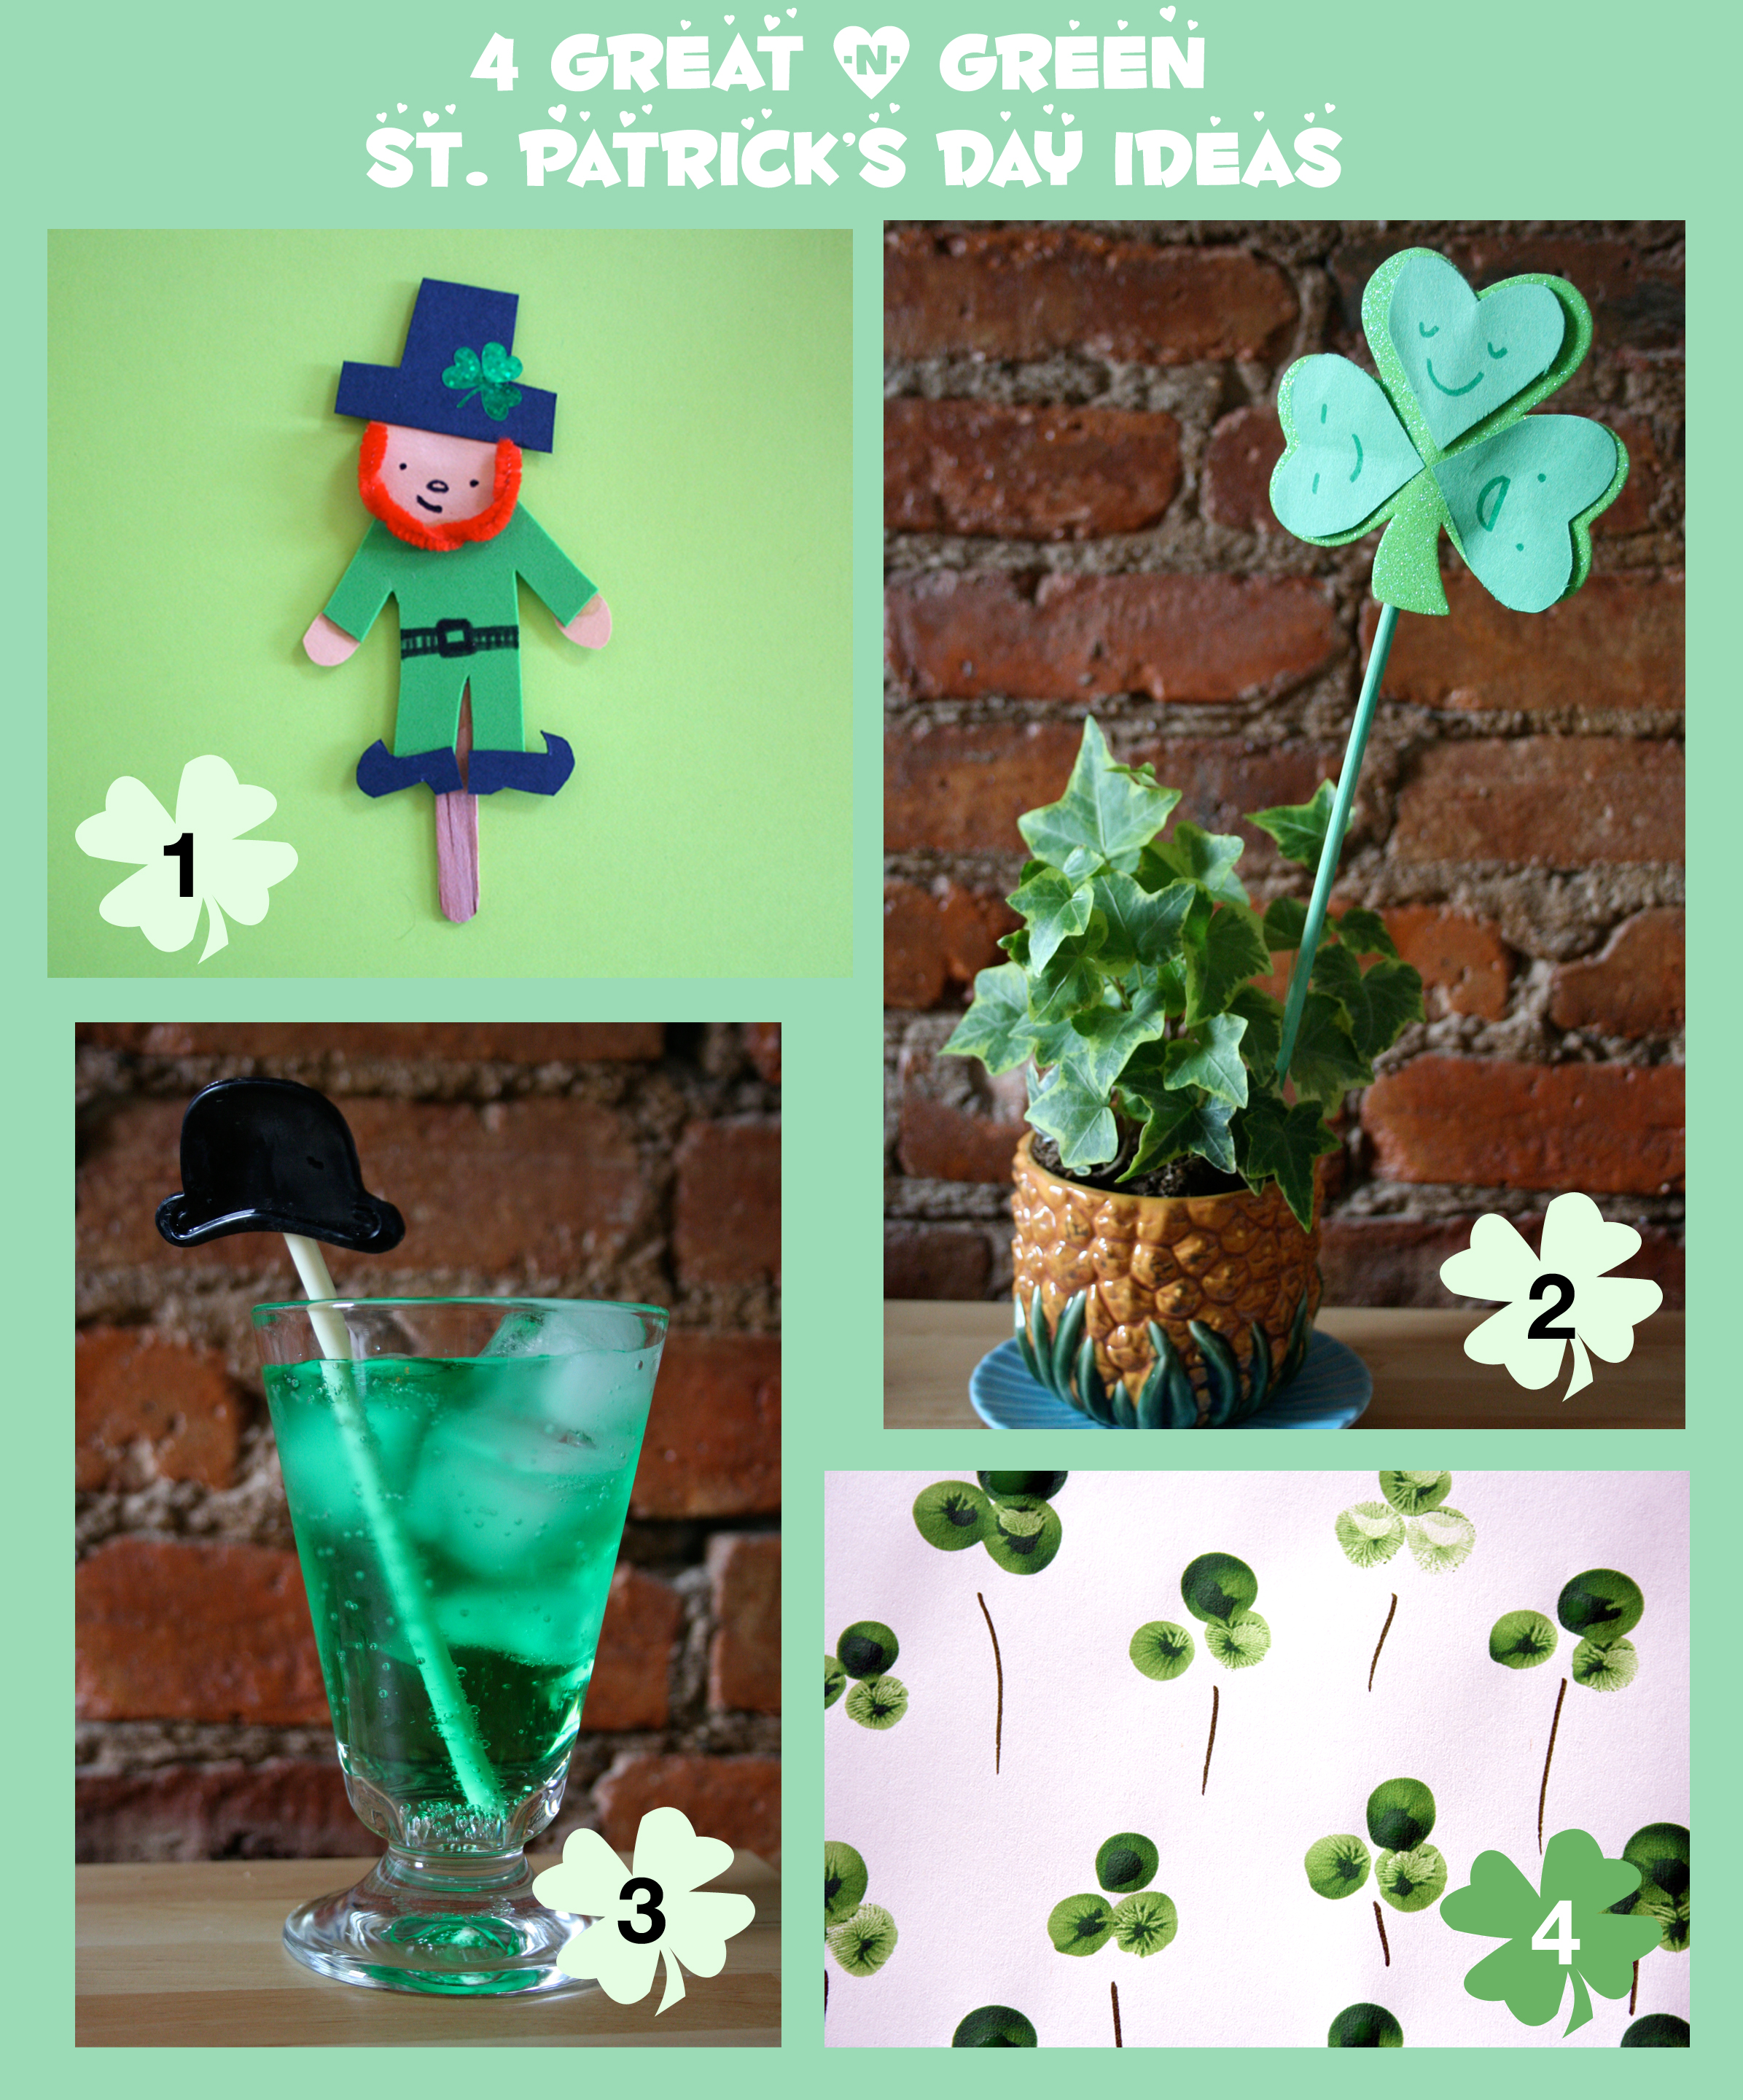 4 Great & Green Ideas for St. Patrick's Day!